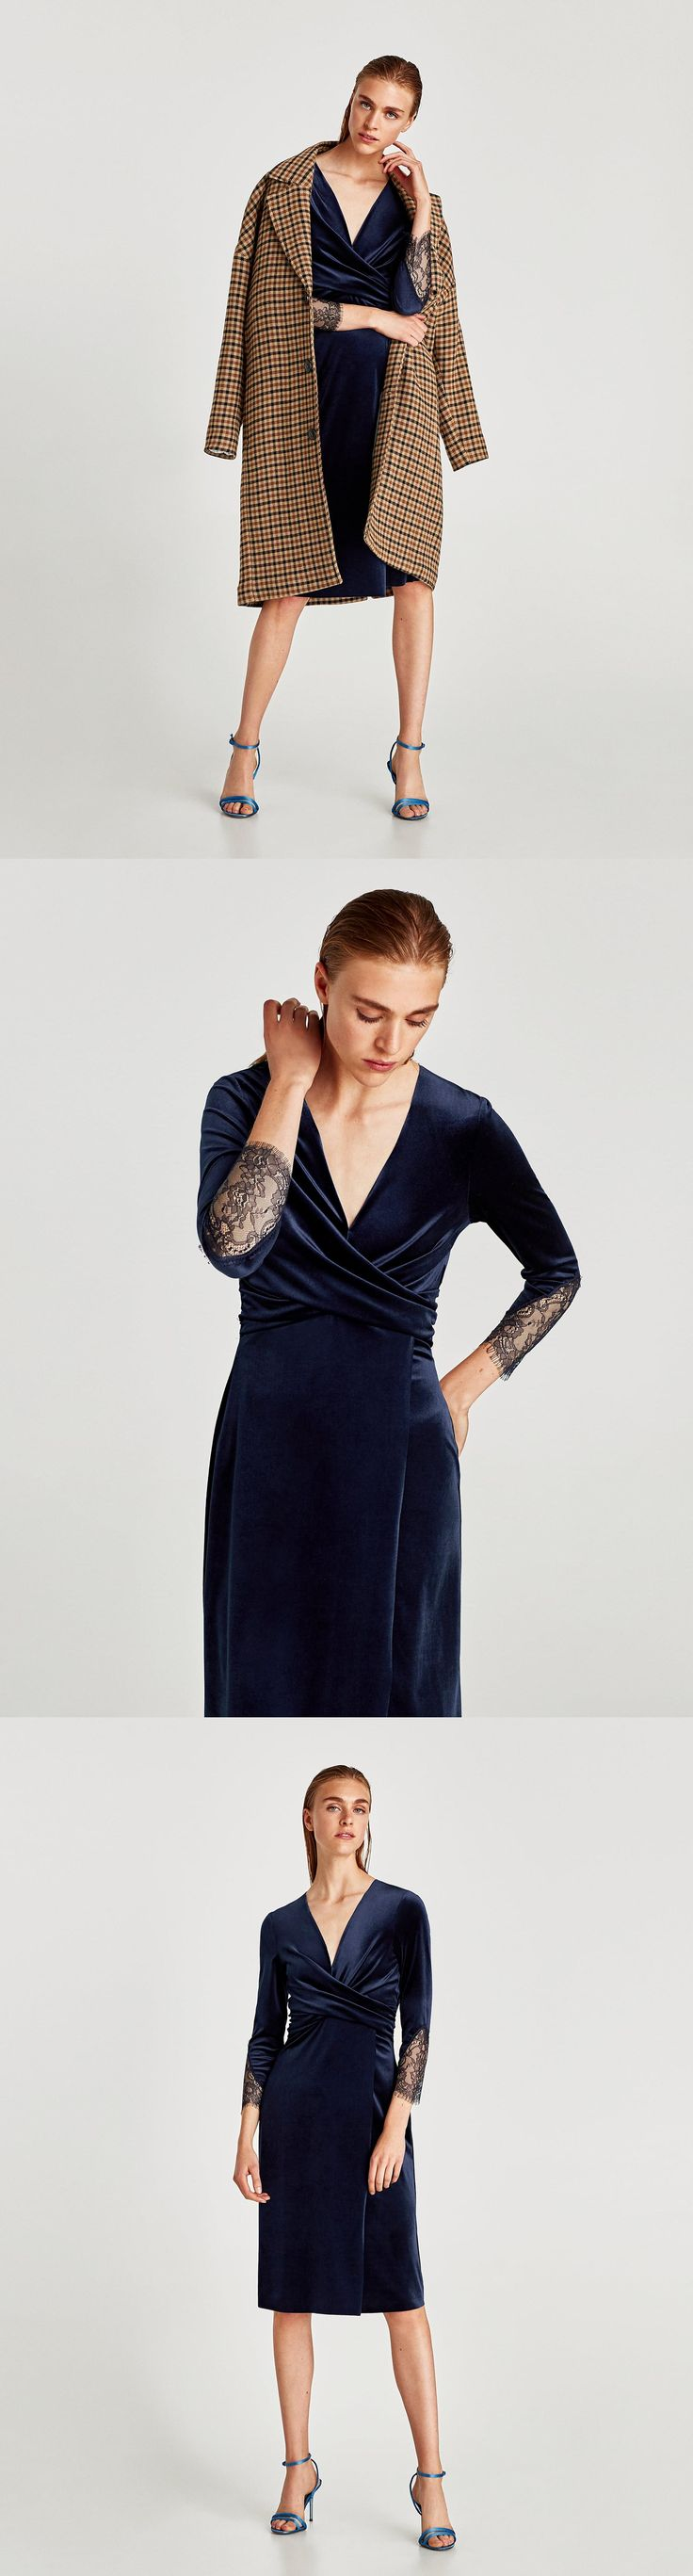 Crossover Velvet Dress // clojure.lang.LazySeq@f09507a8 // Zara // Velvet midi dress with crossed neckline, long sleeves and lace detail on the sleeves. HEIGHT OF MODEL: 178 cm. / 5′ 10″